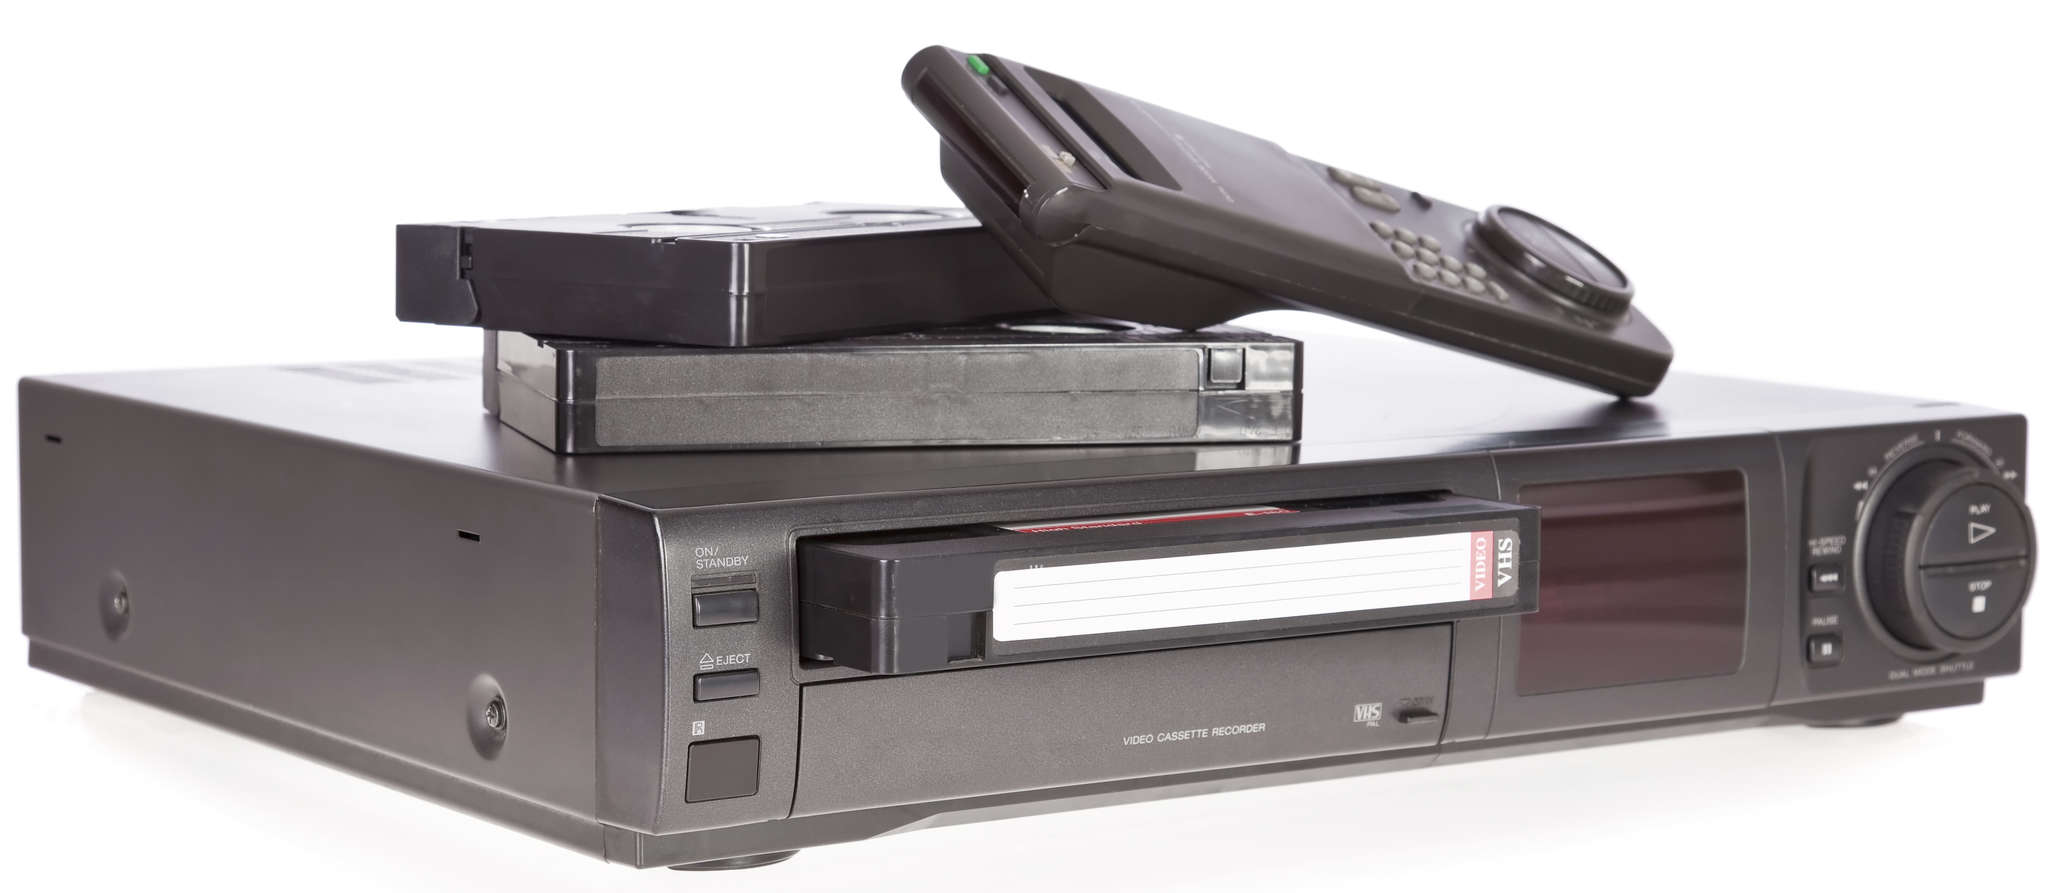 VHS and rival Betamax revolutionized the TV and film industries, users´ viewing habits, and people´s comfort with technology before their decline.